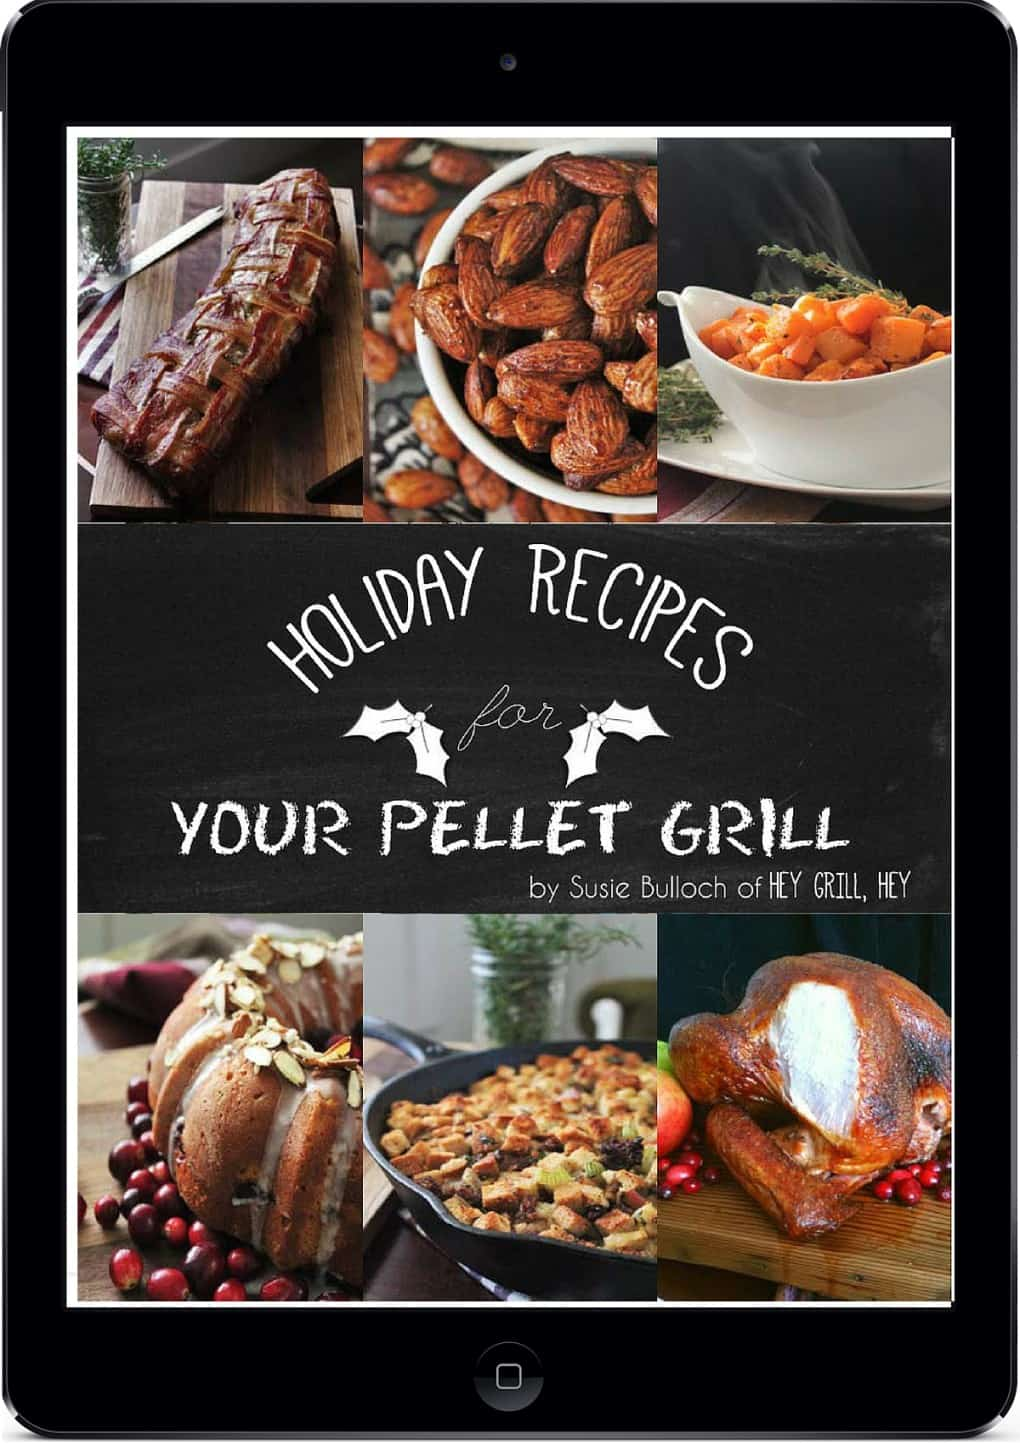 Holiday Recipes for your Pellet Grill